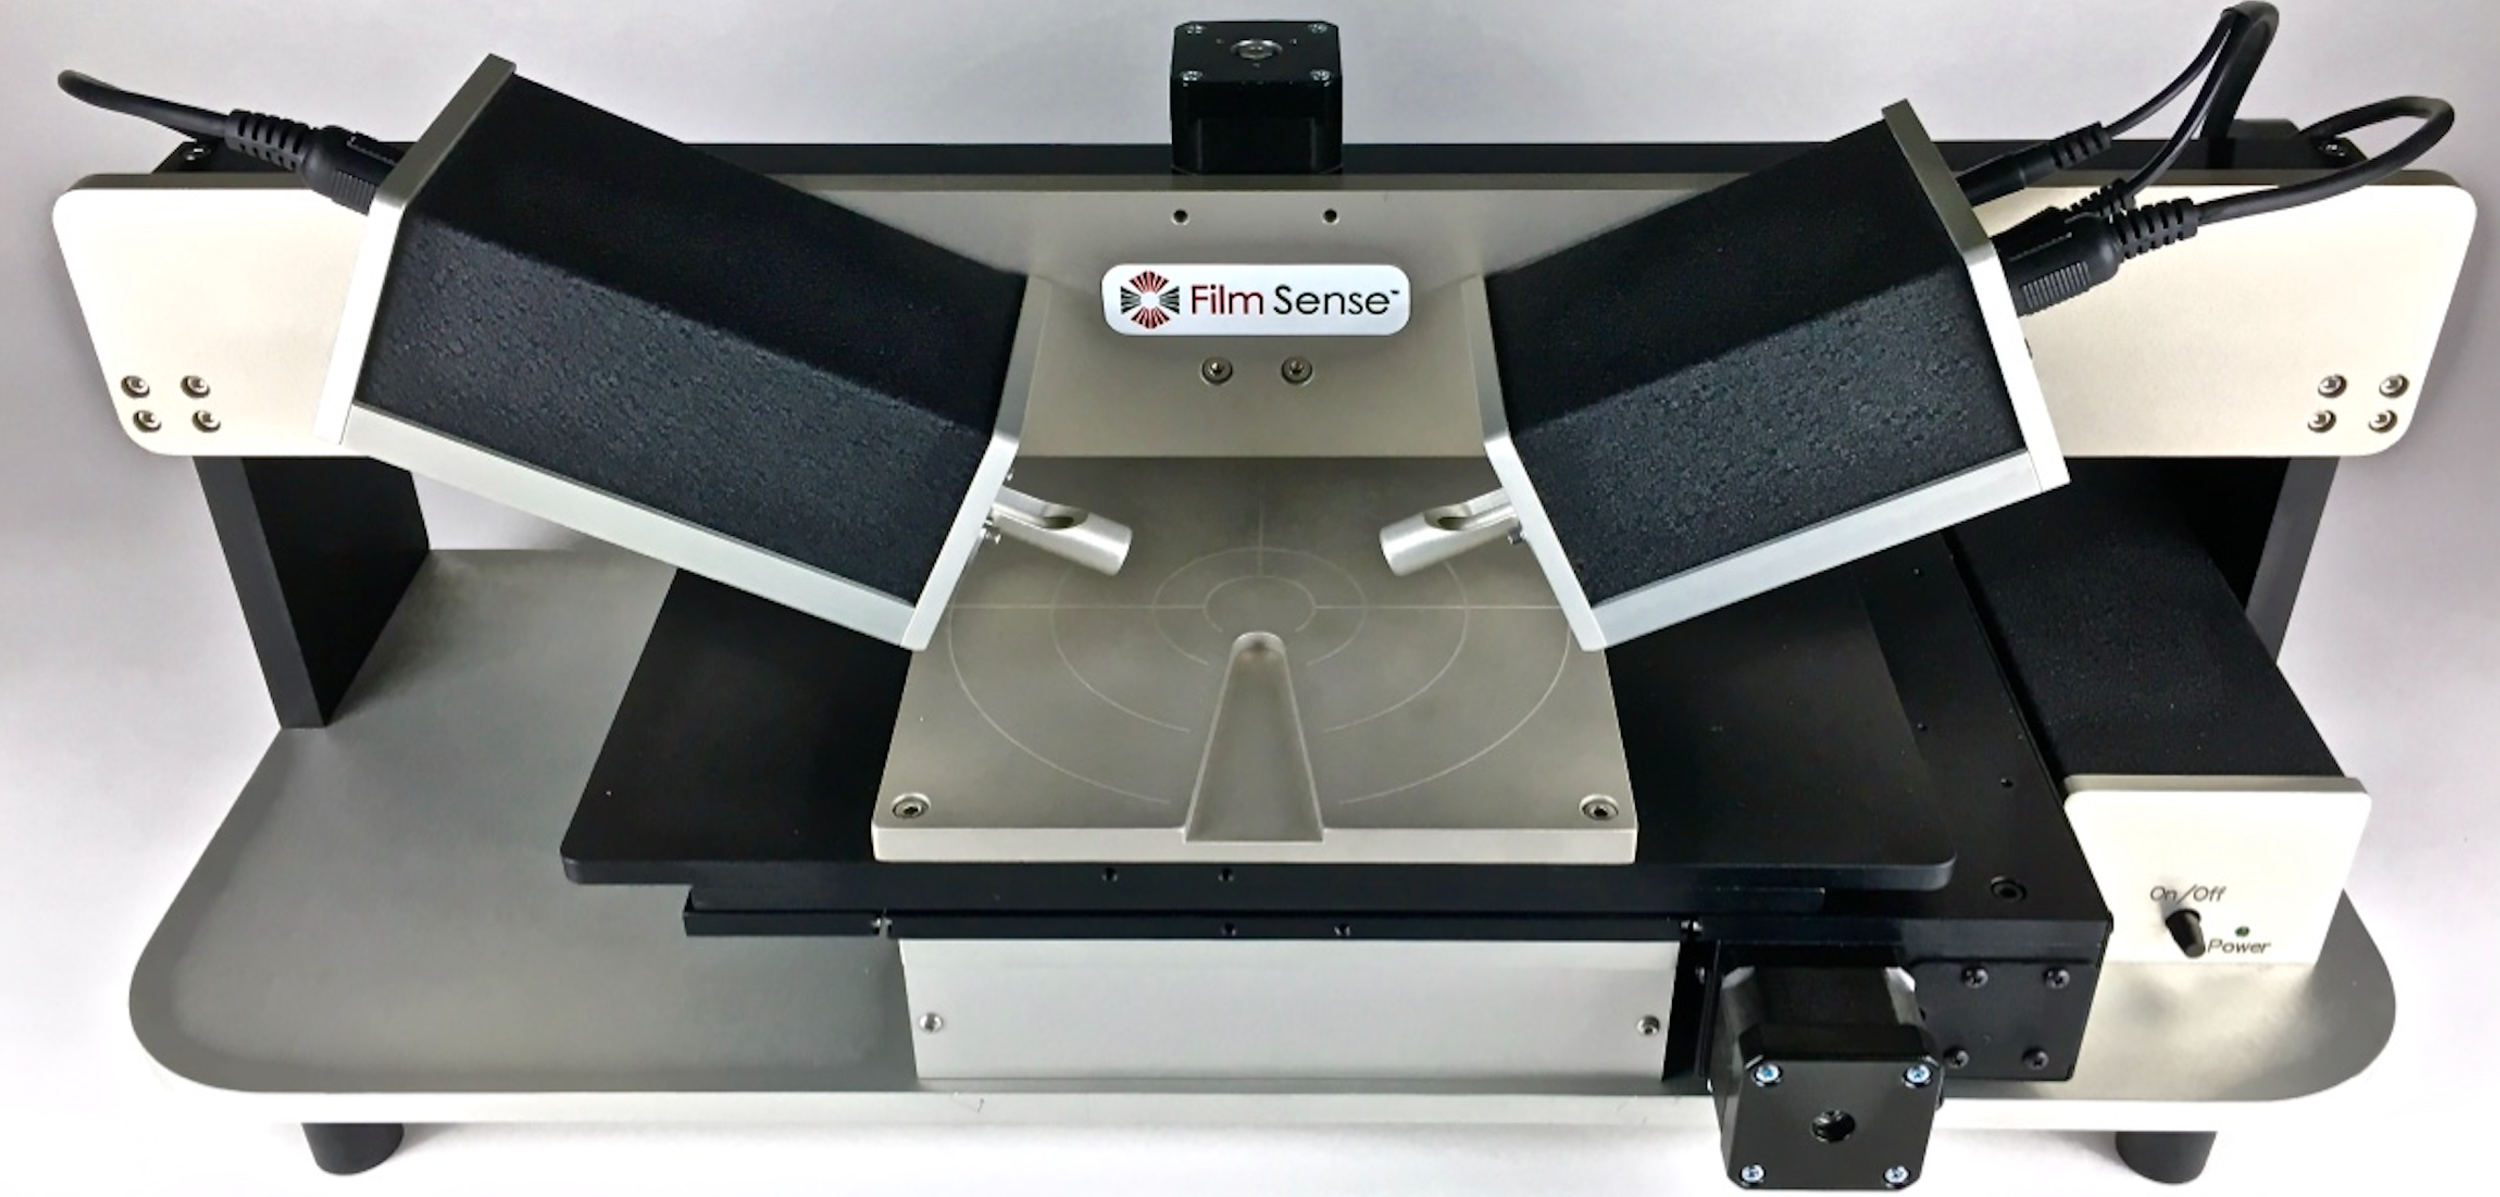 FS-1 Compact Footprint Ellipsometer - Thin film thickness